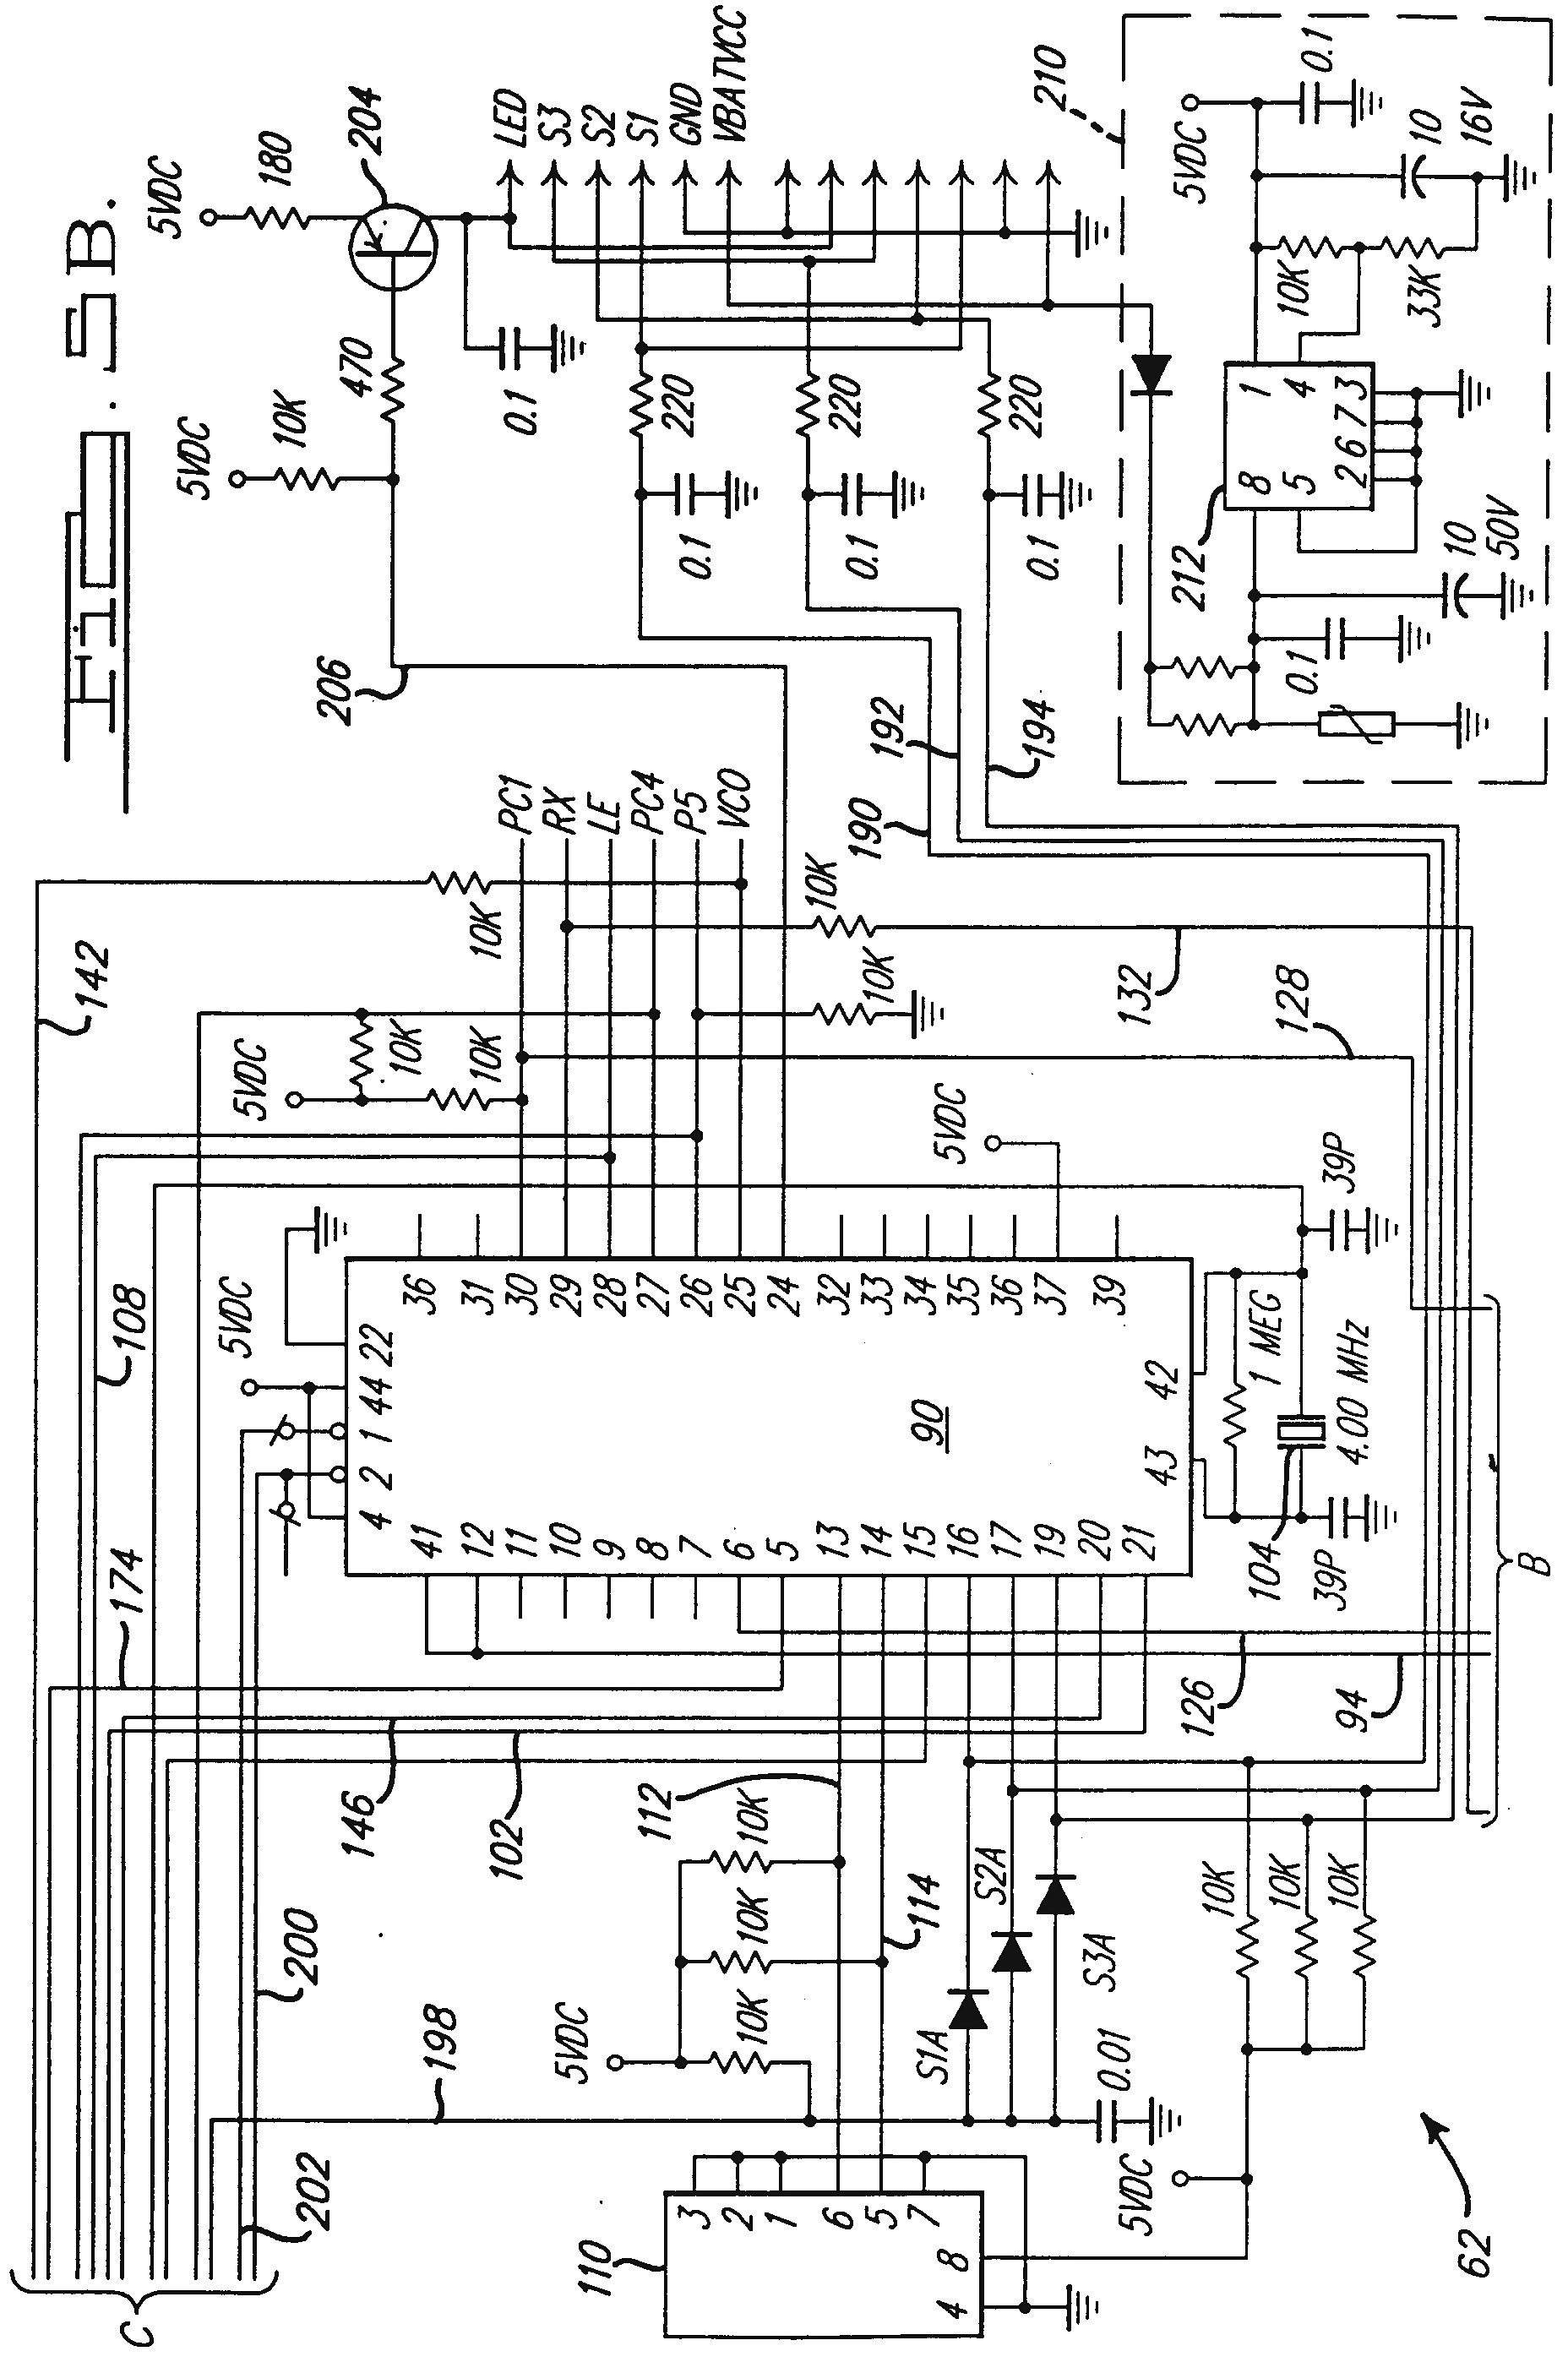 Schematic Liftmaster Wiring Diagram from mainetreasurechest.com